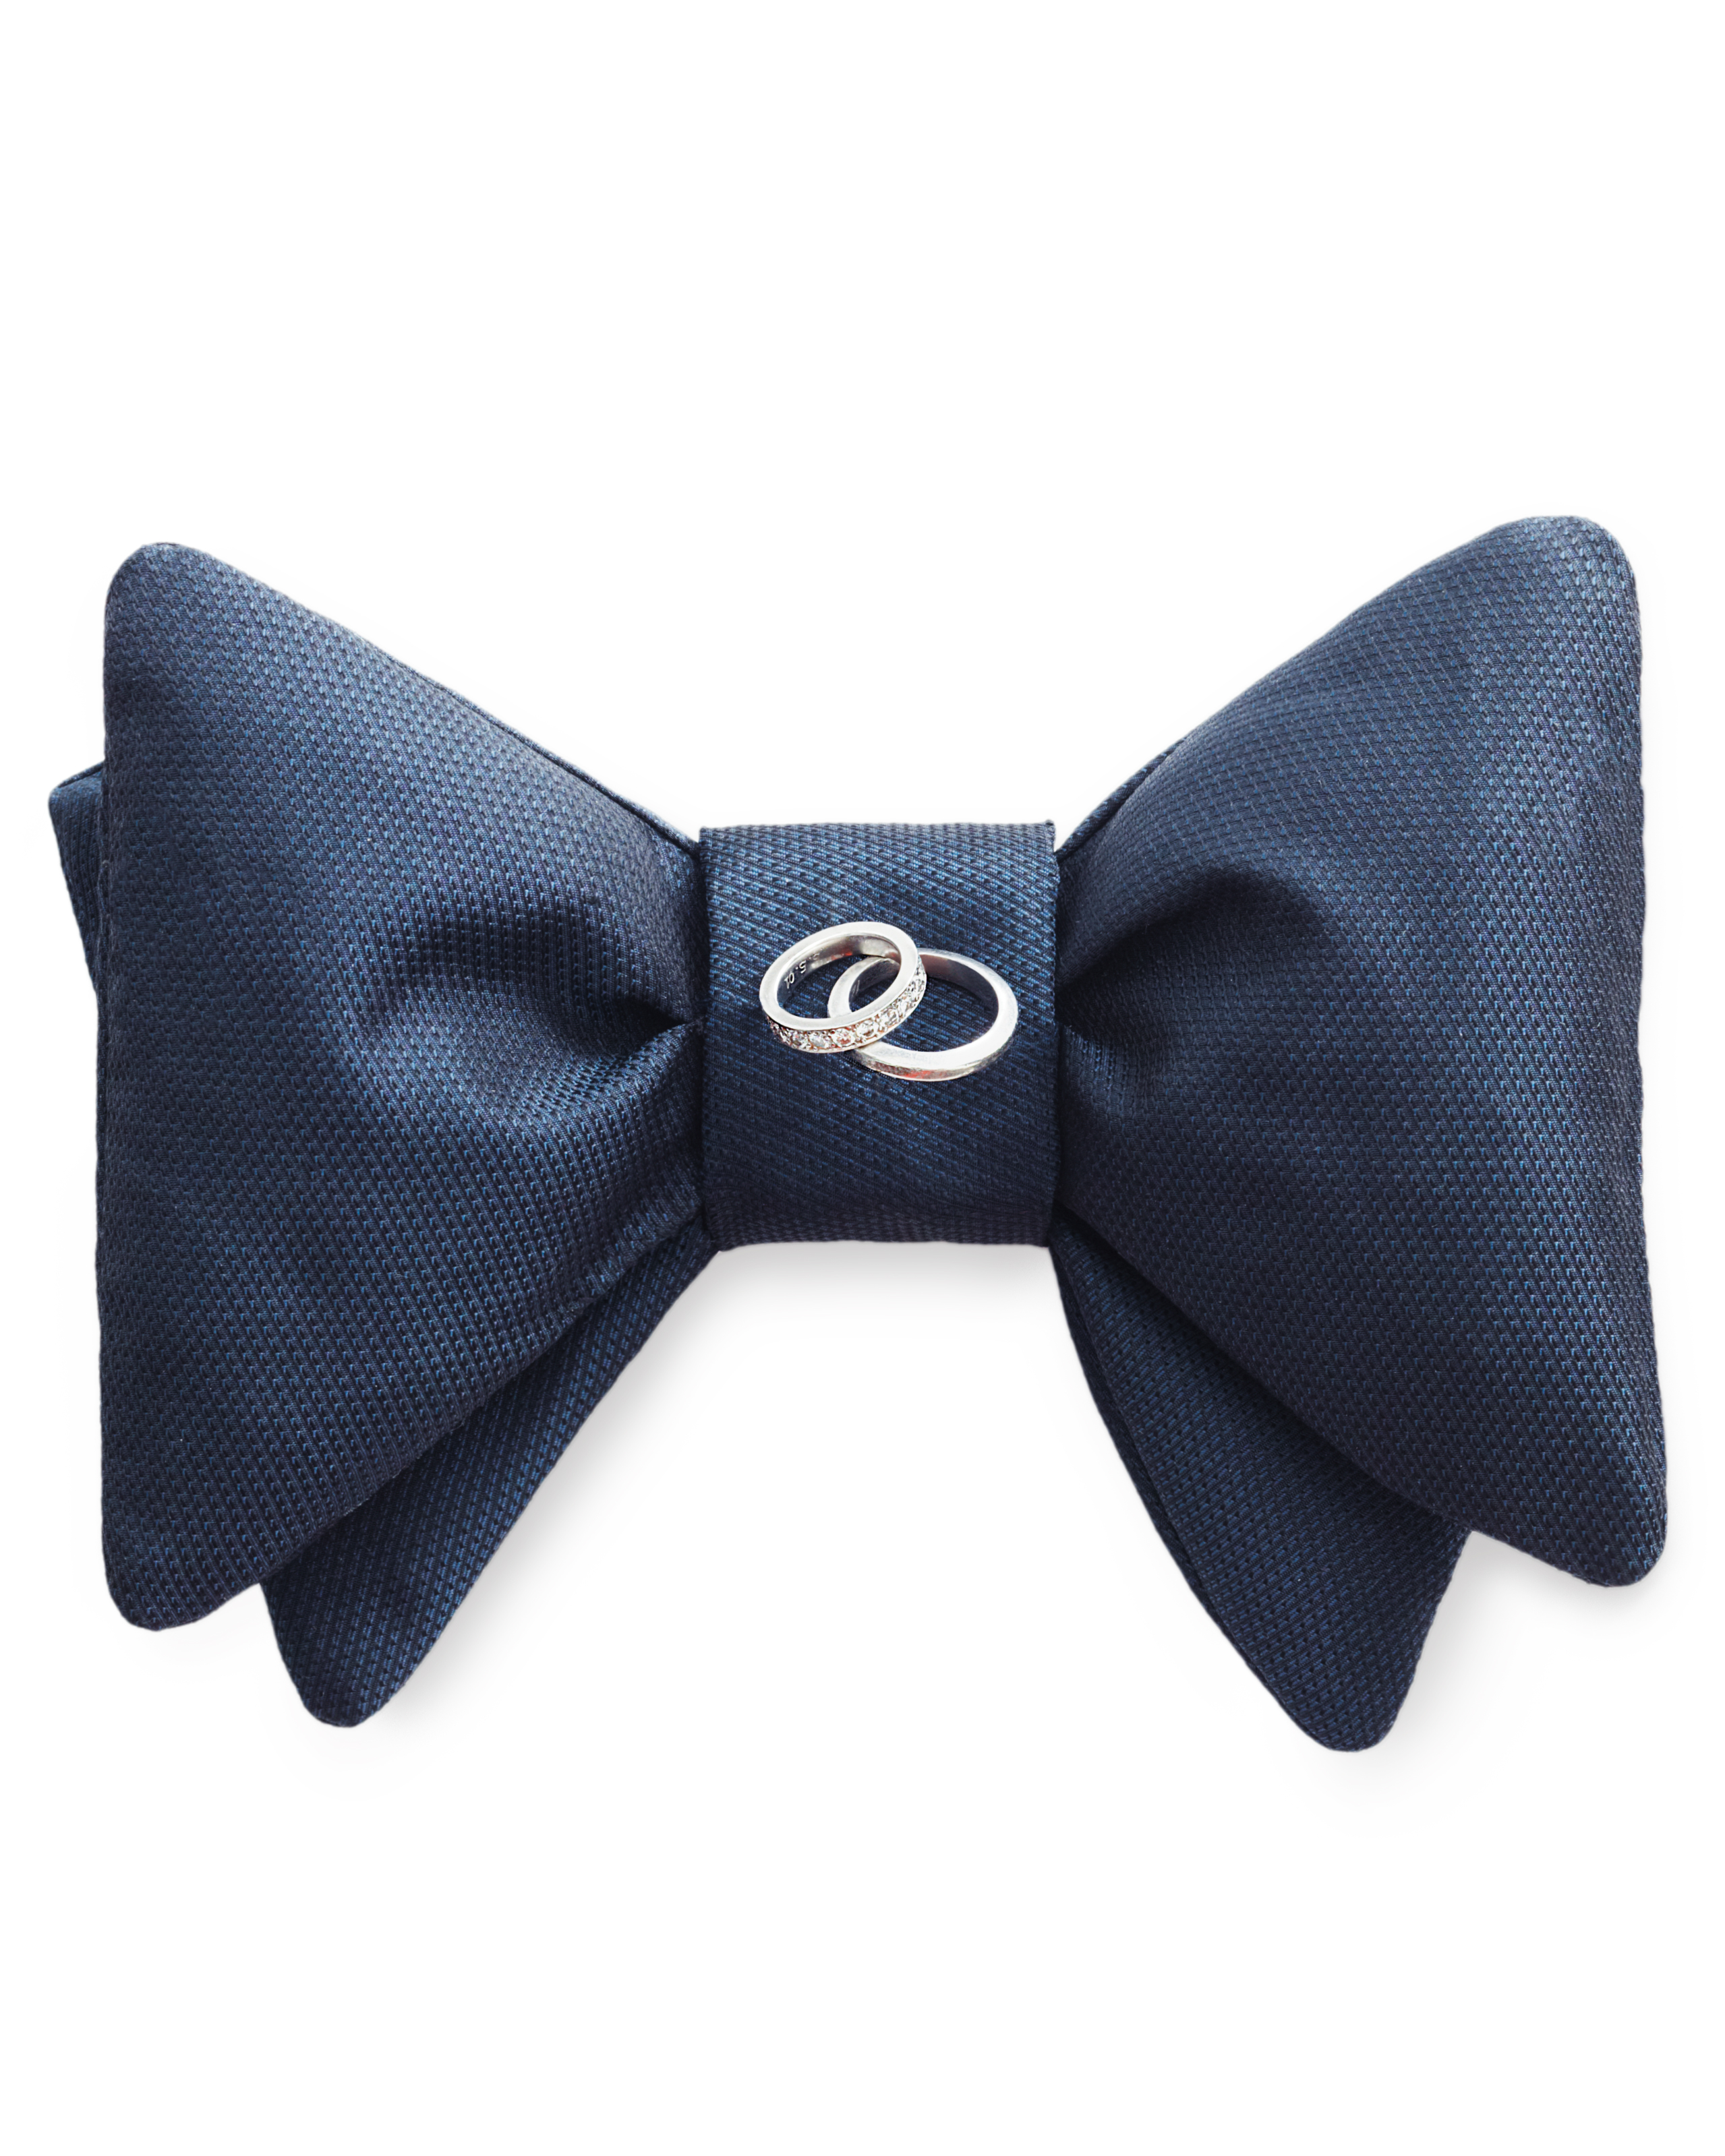 No-Sew Bow Tie Ring Pillow